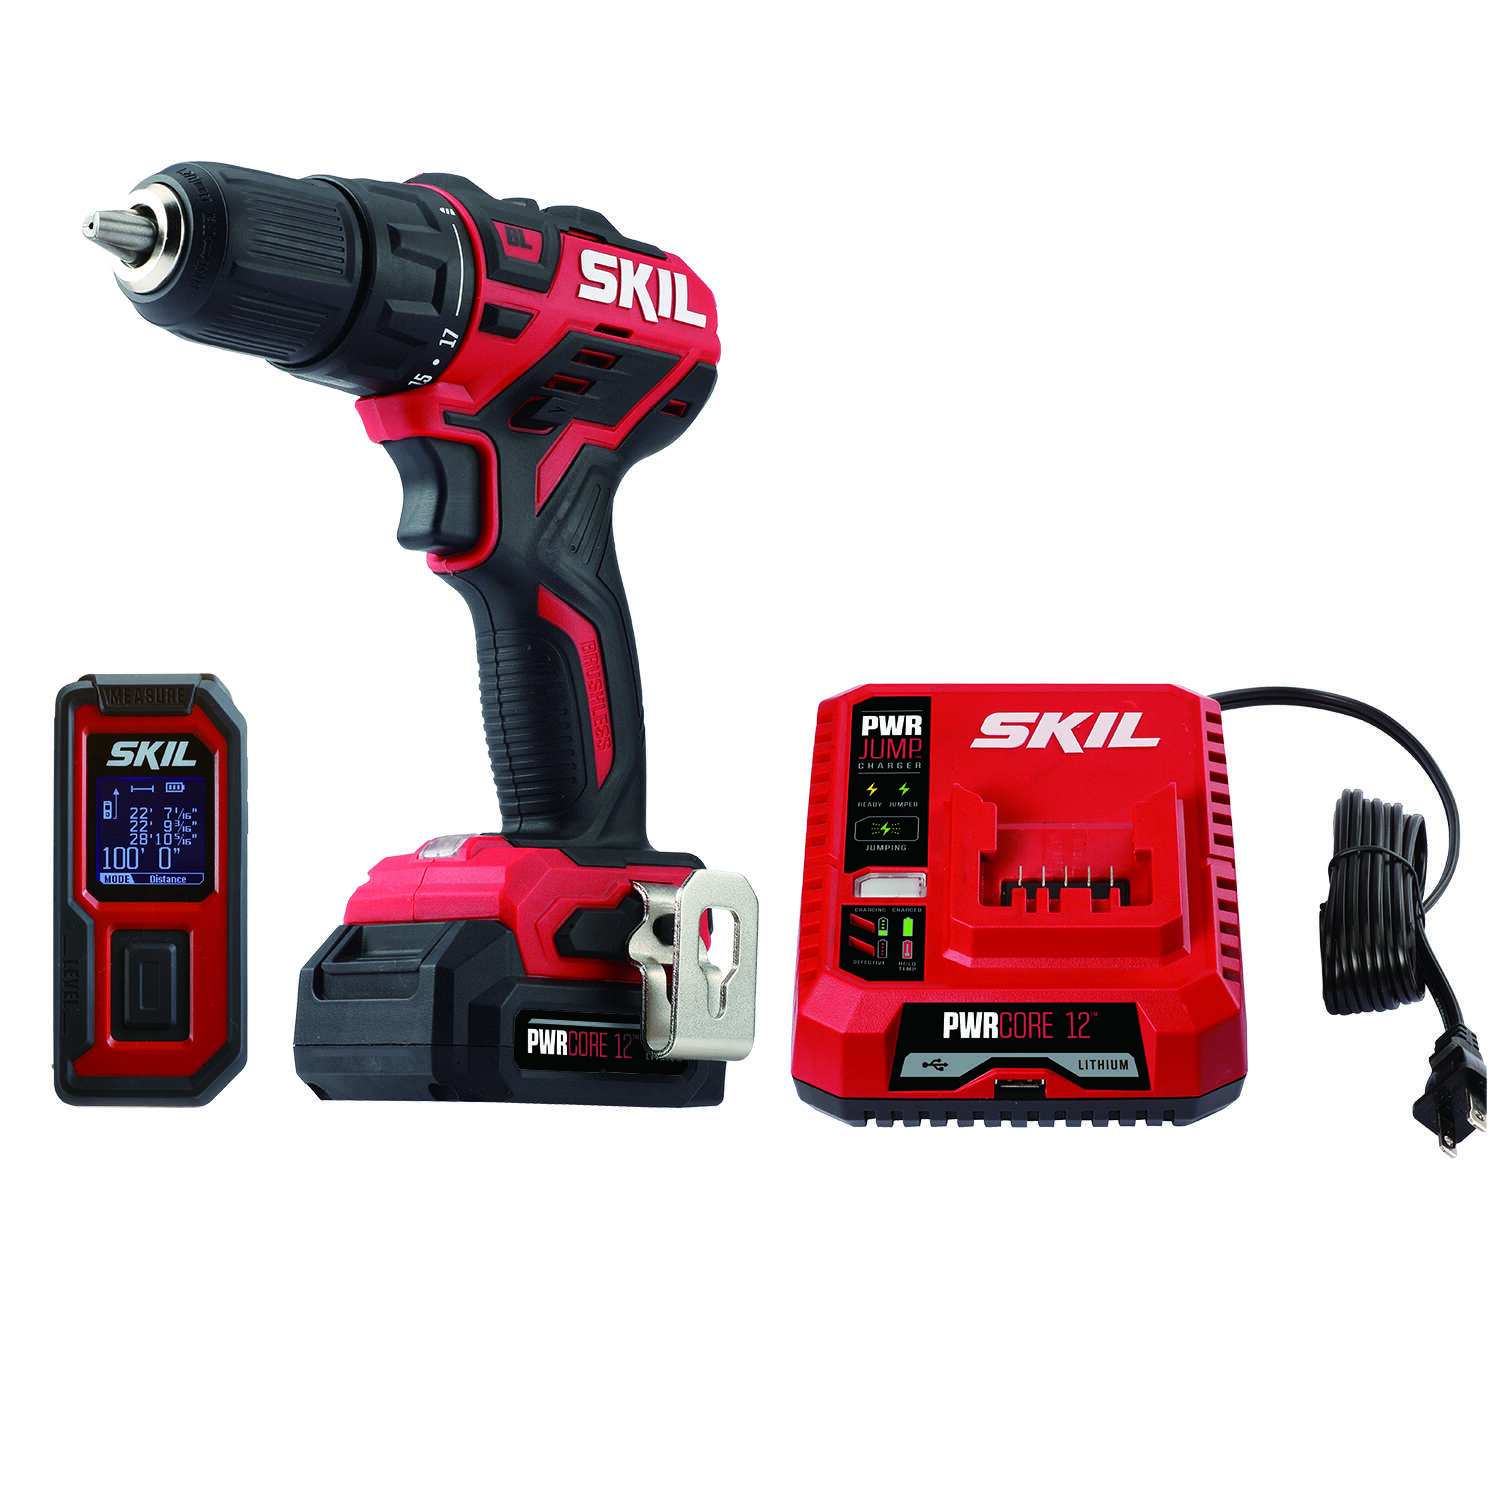 Skil PWRCore 12 12 volt Cordless Brushless 2 tool Drill Driver and Laser Measure Kit